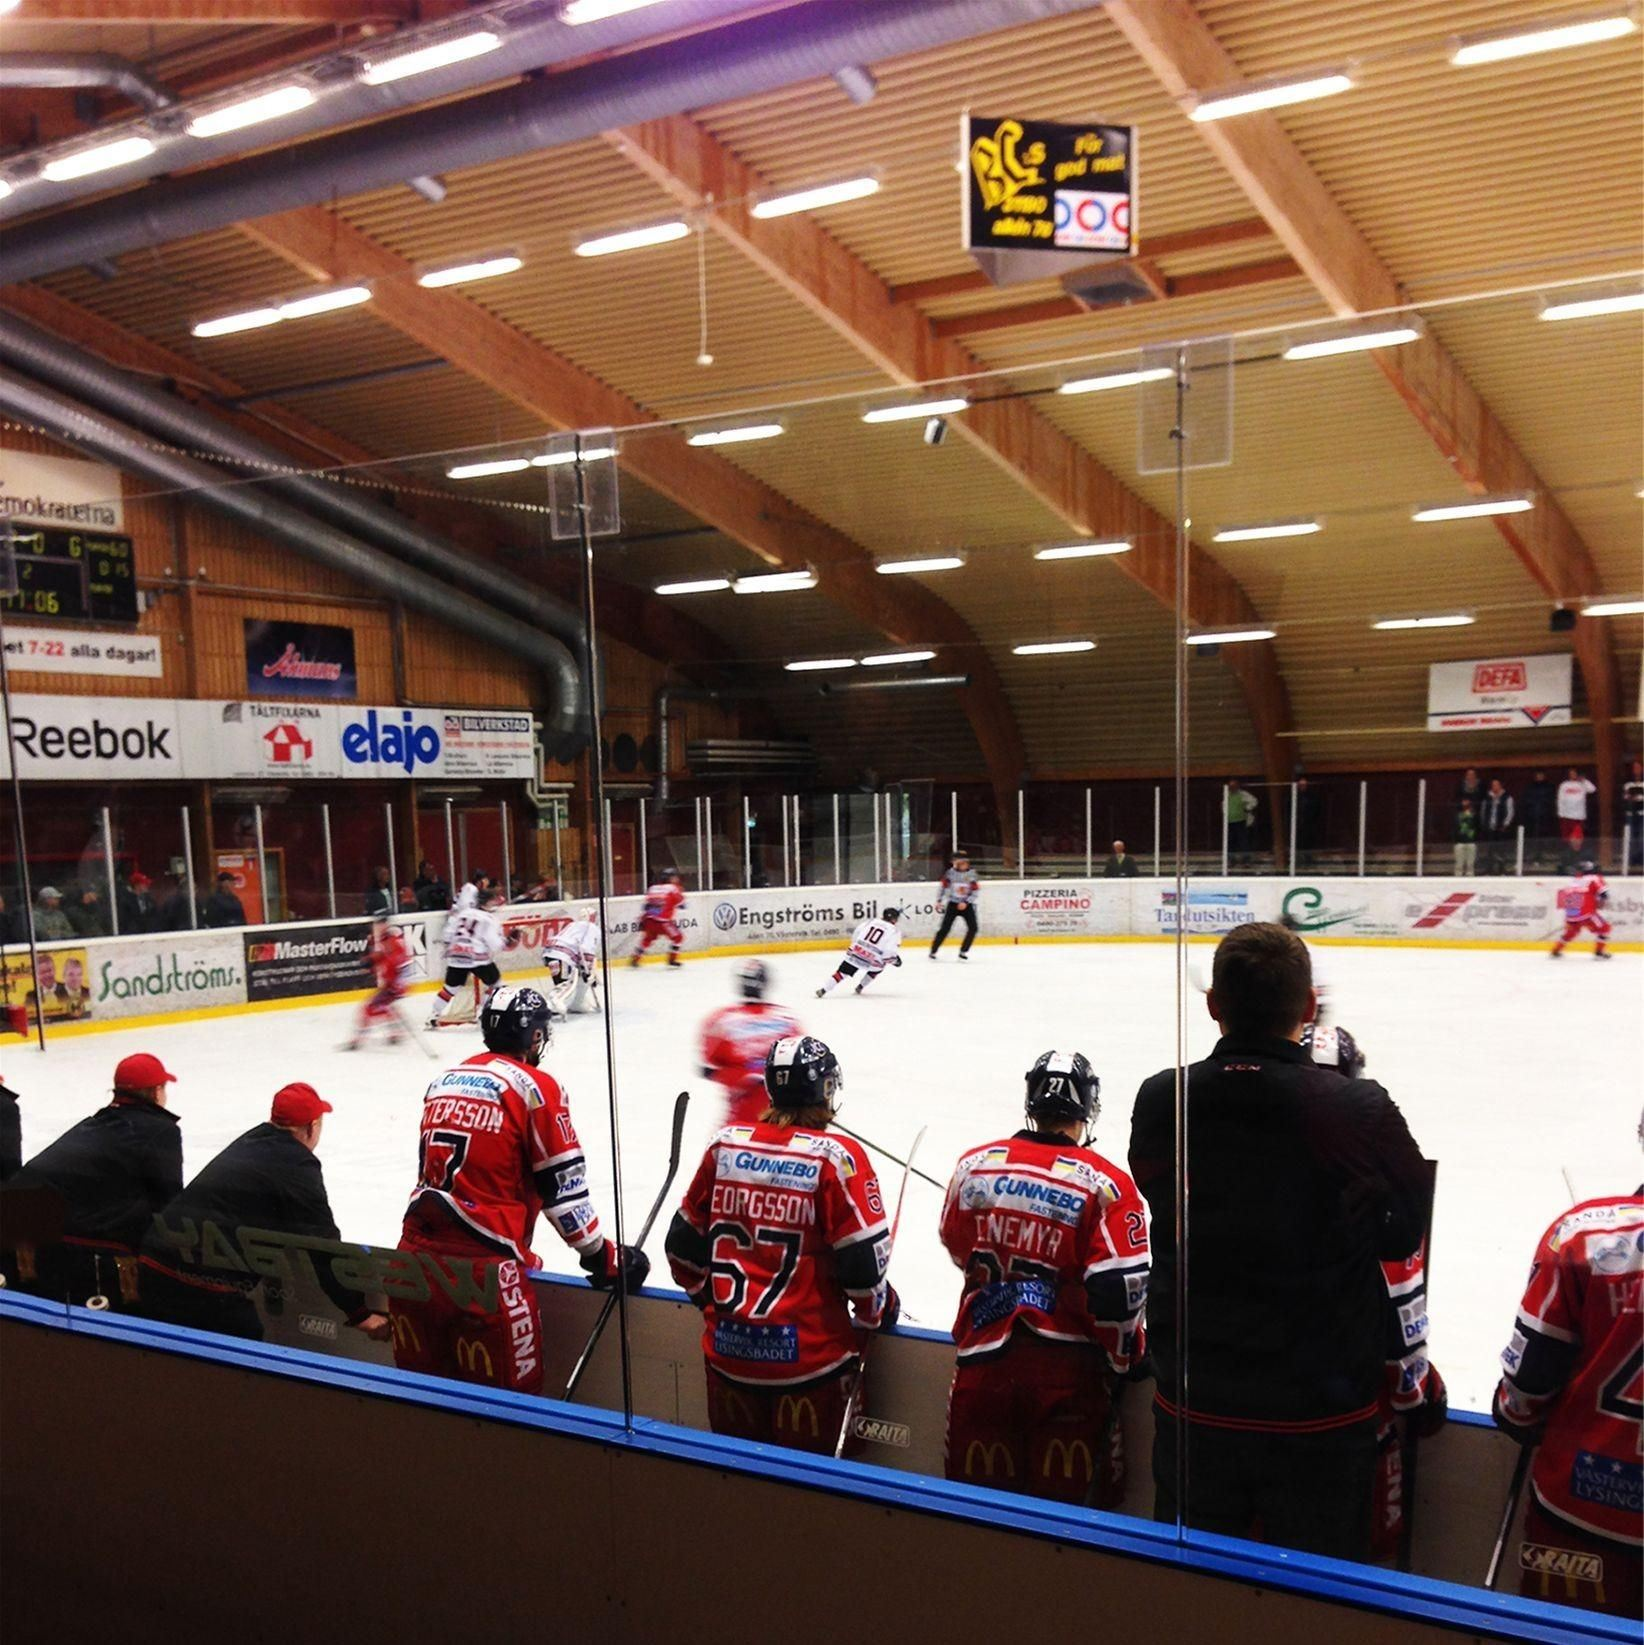 VIK Hockey - Leksands IF